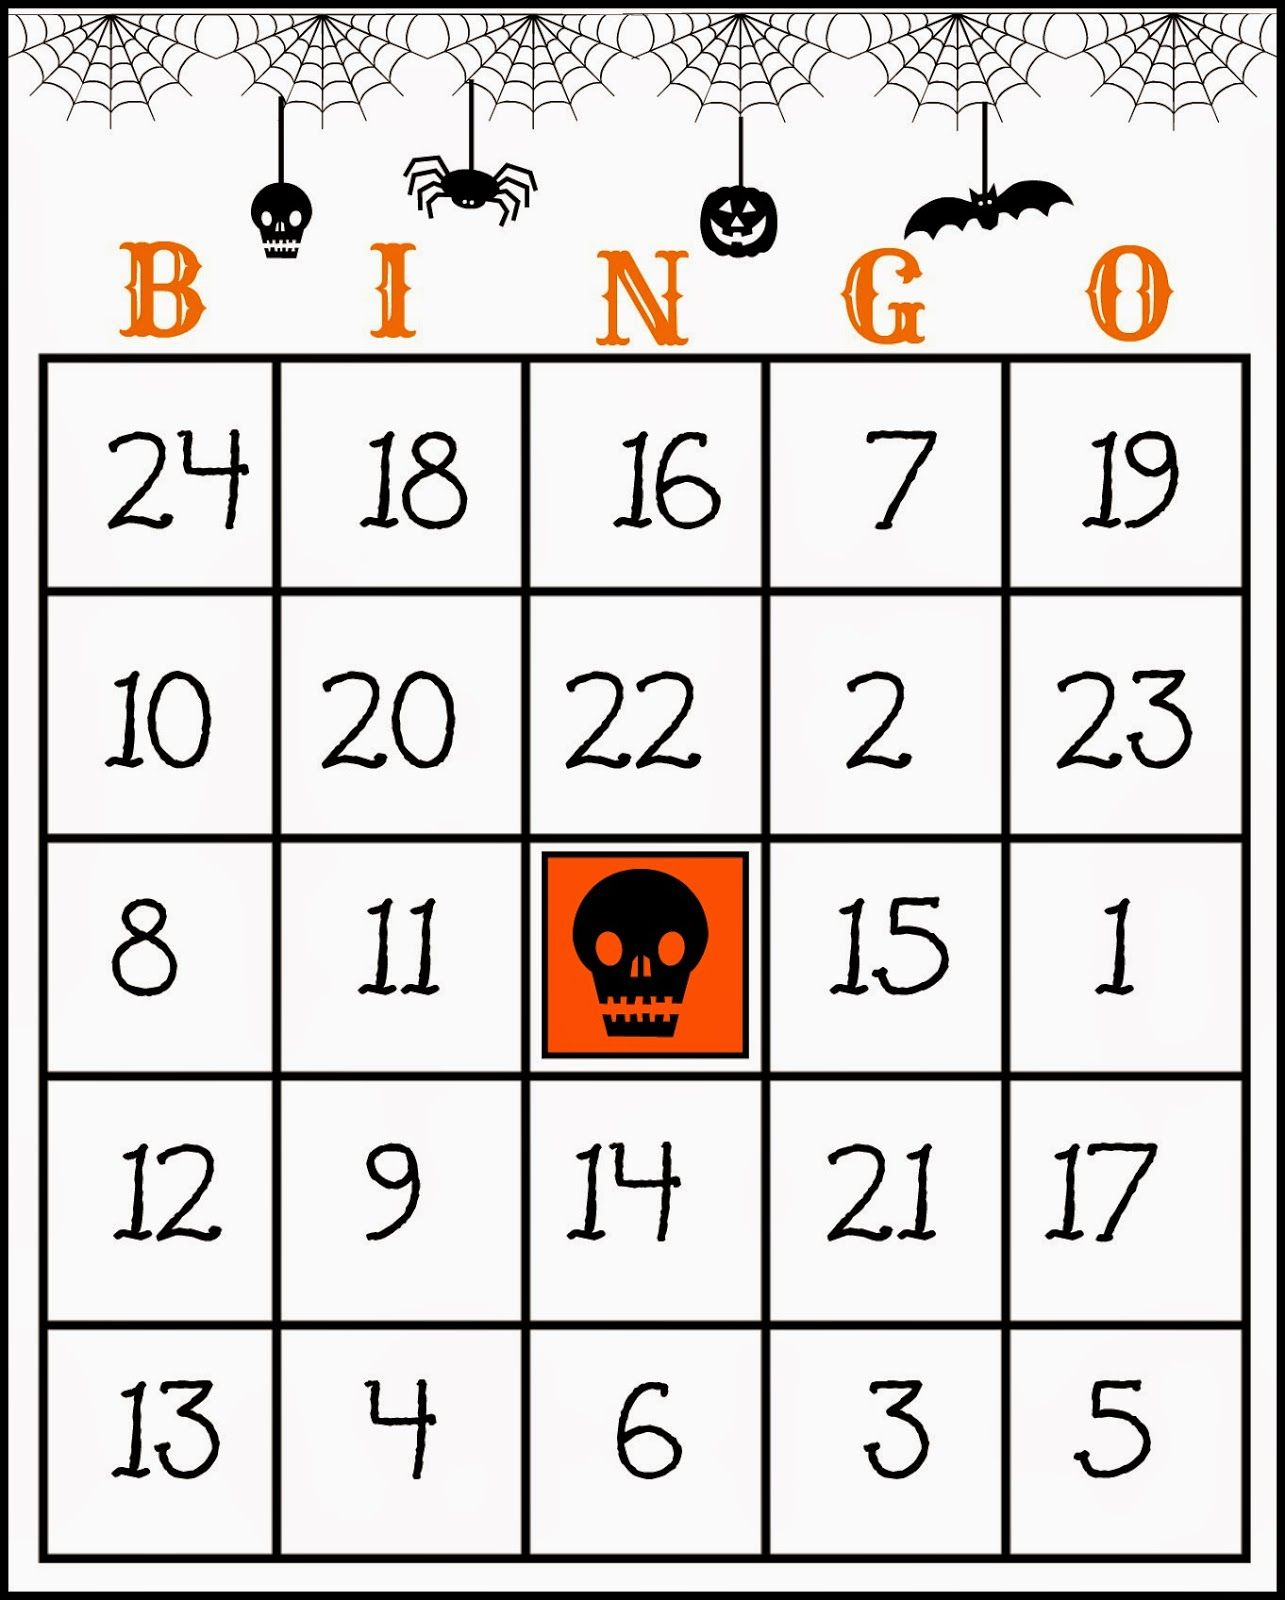 Crafty In Crosby: Free Printable Halloween Bingo Game | Products I - Free Printable Halloween Bingo Cards